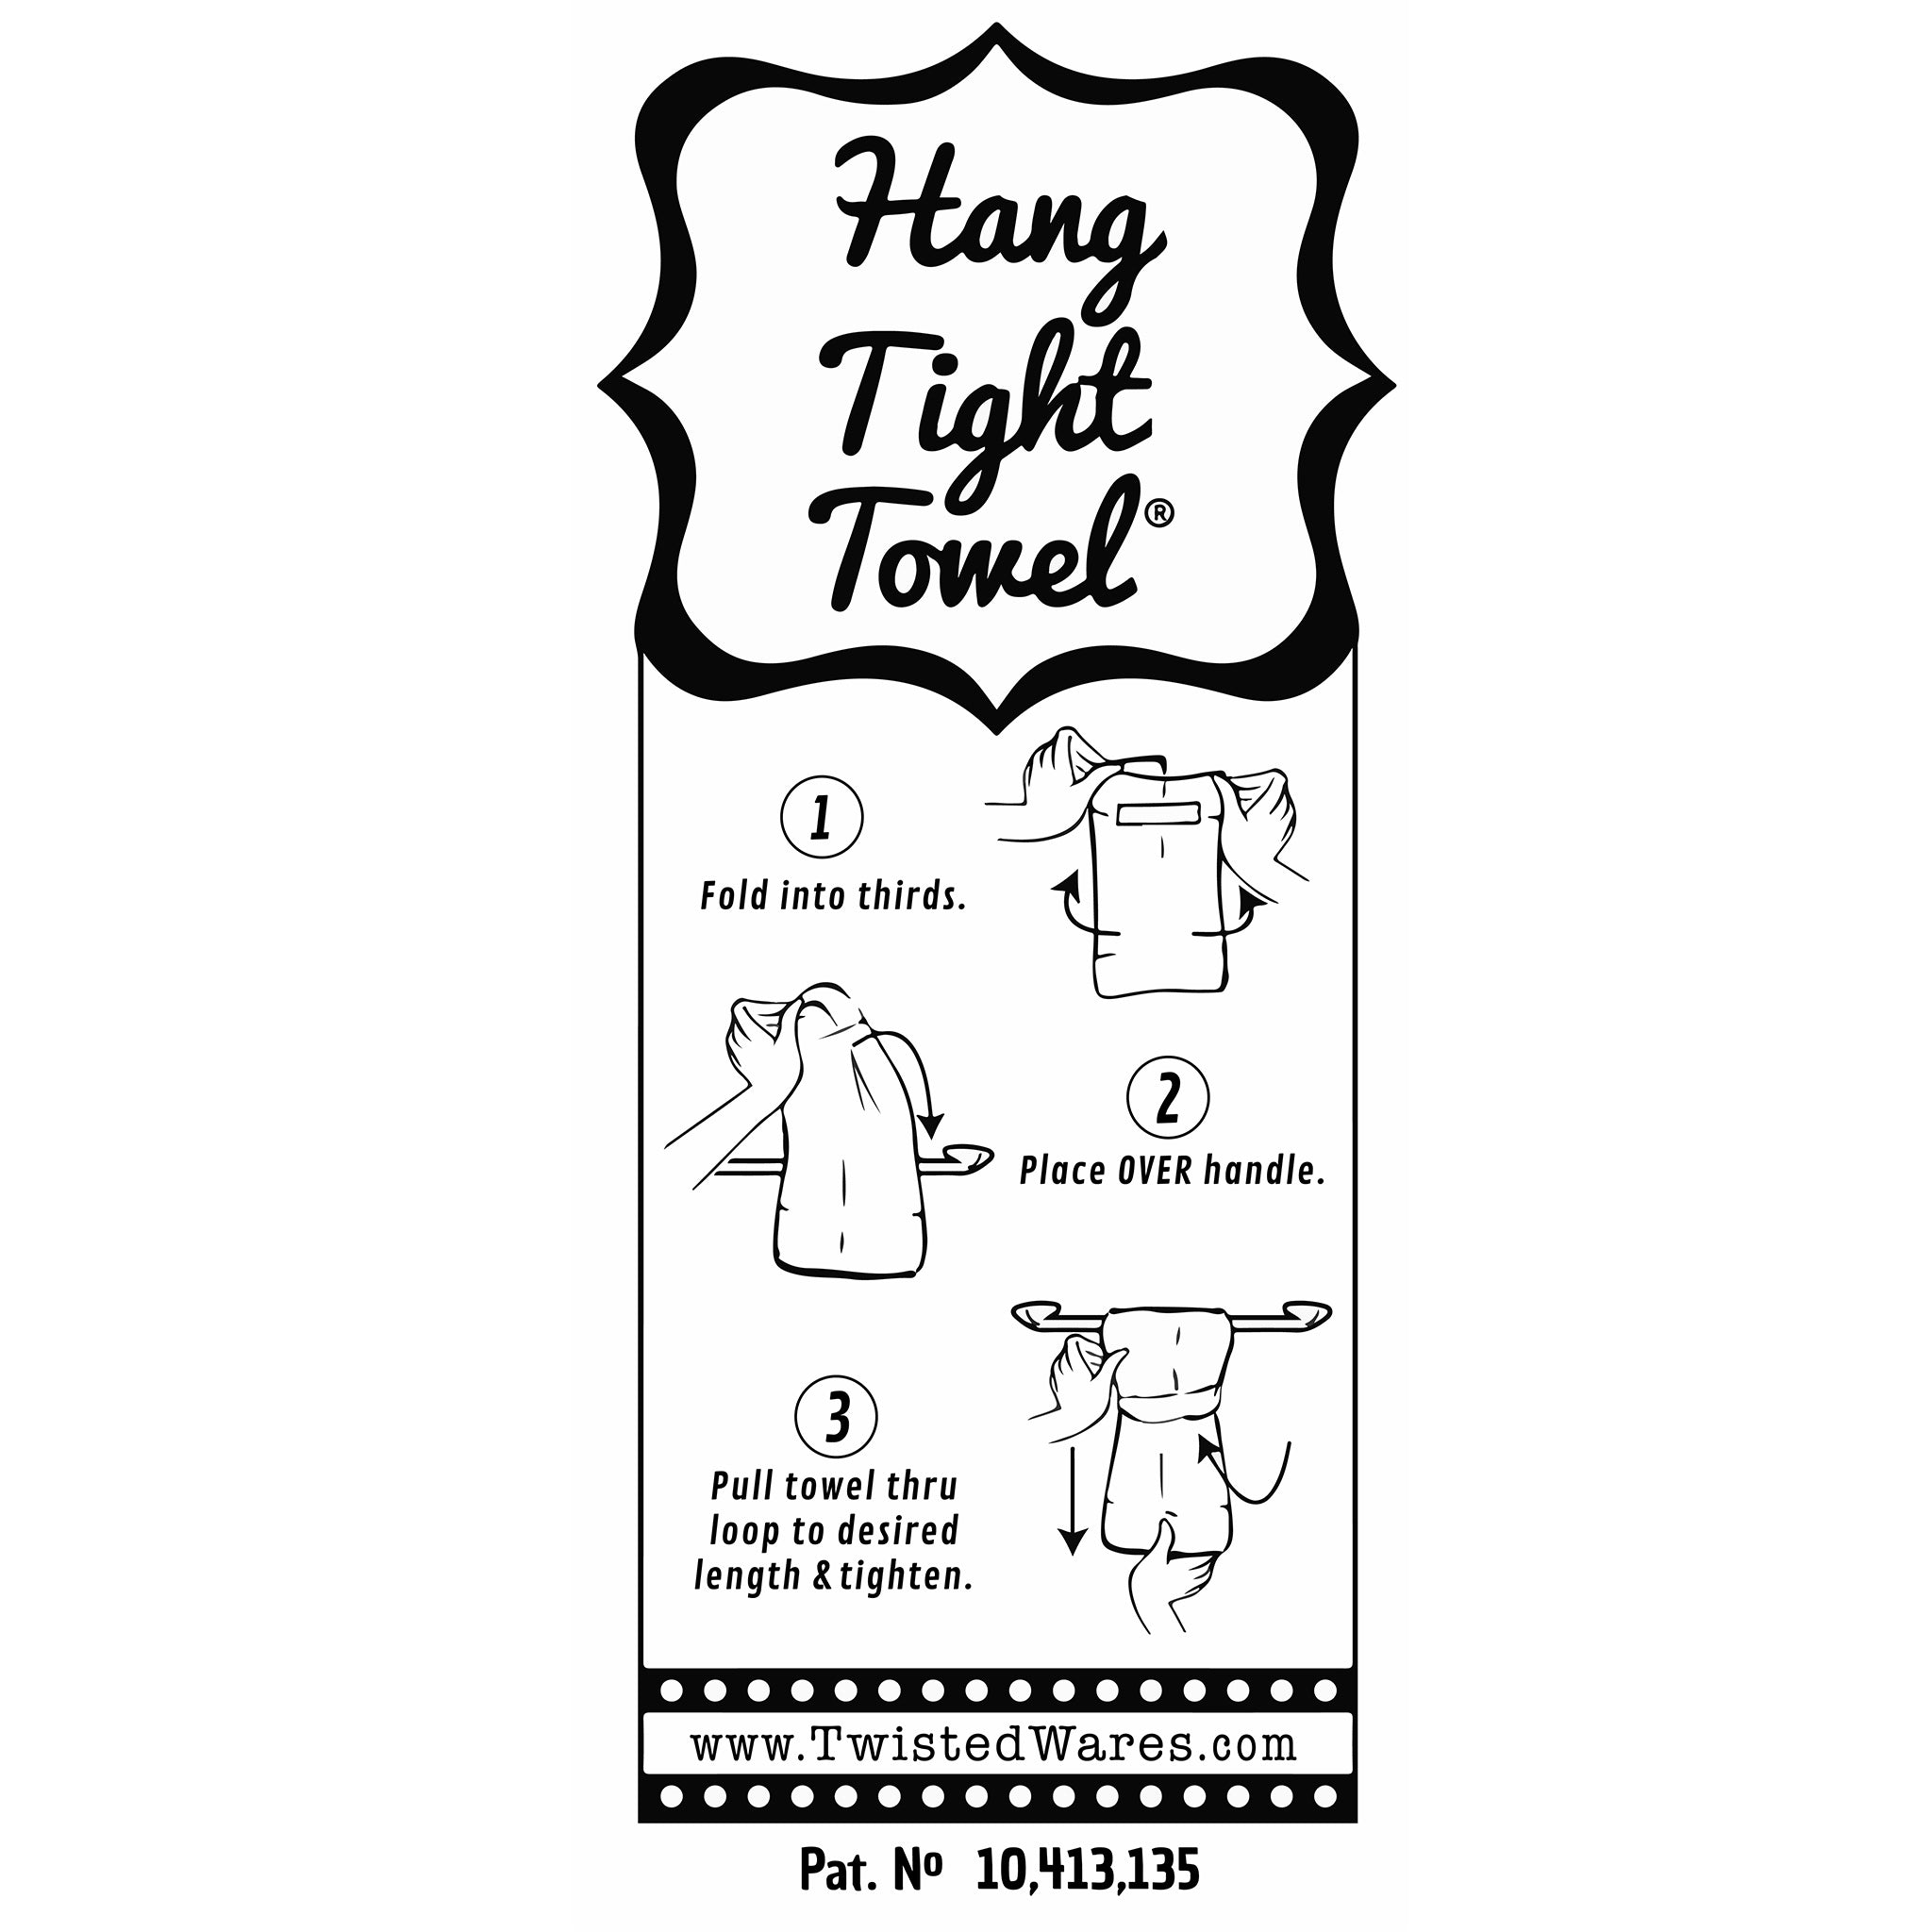 I Tried To Stop Swearing Flour Sack Hang Tight Towel®